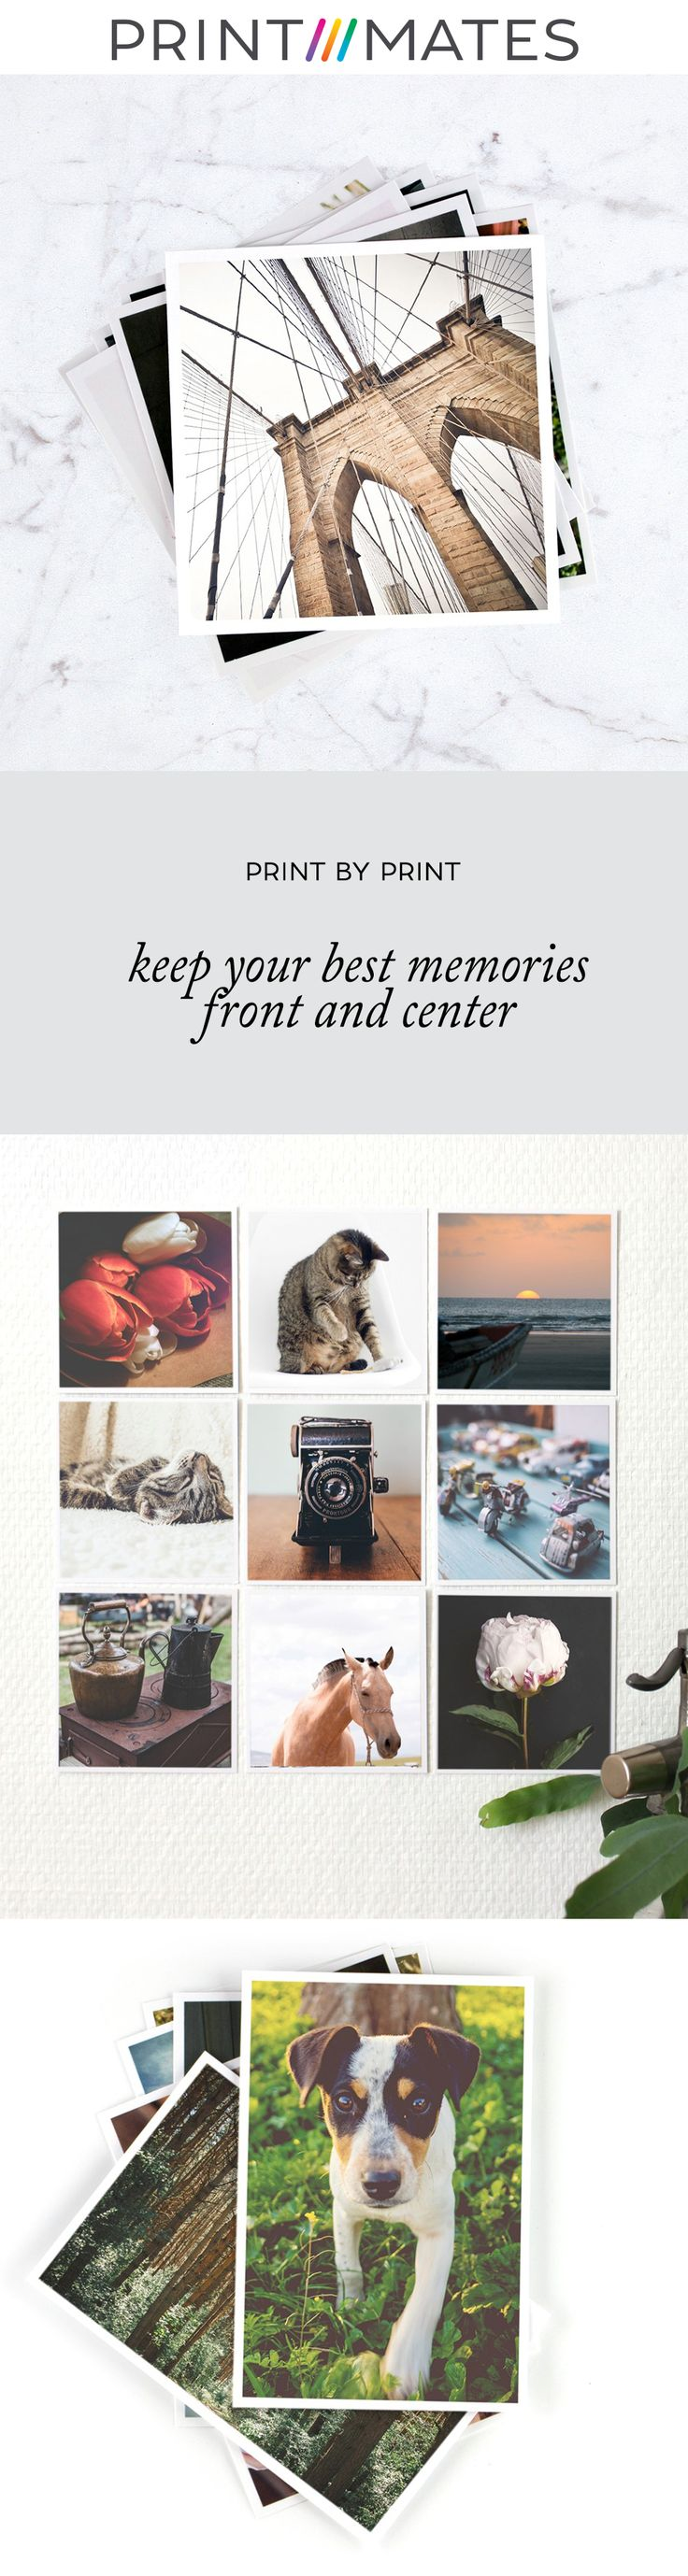 Print Mates dedicates itself to turning your memories into works of art you will cherish. We make the highest quality reproductions of your photos in a wide array of mediums, including prints in all shapes and size on quality photo paper, metal, wood and canvas.  #photogifts #frames #photography #love #photoalbums #travel #quotes #fashion #blogger #vacation #decorating #motivationalquotes #coffee #photooftheday #Prints